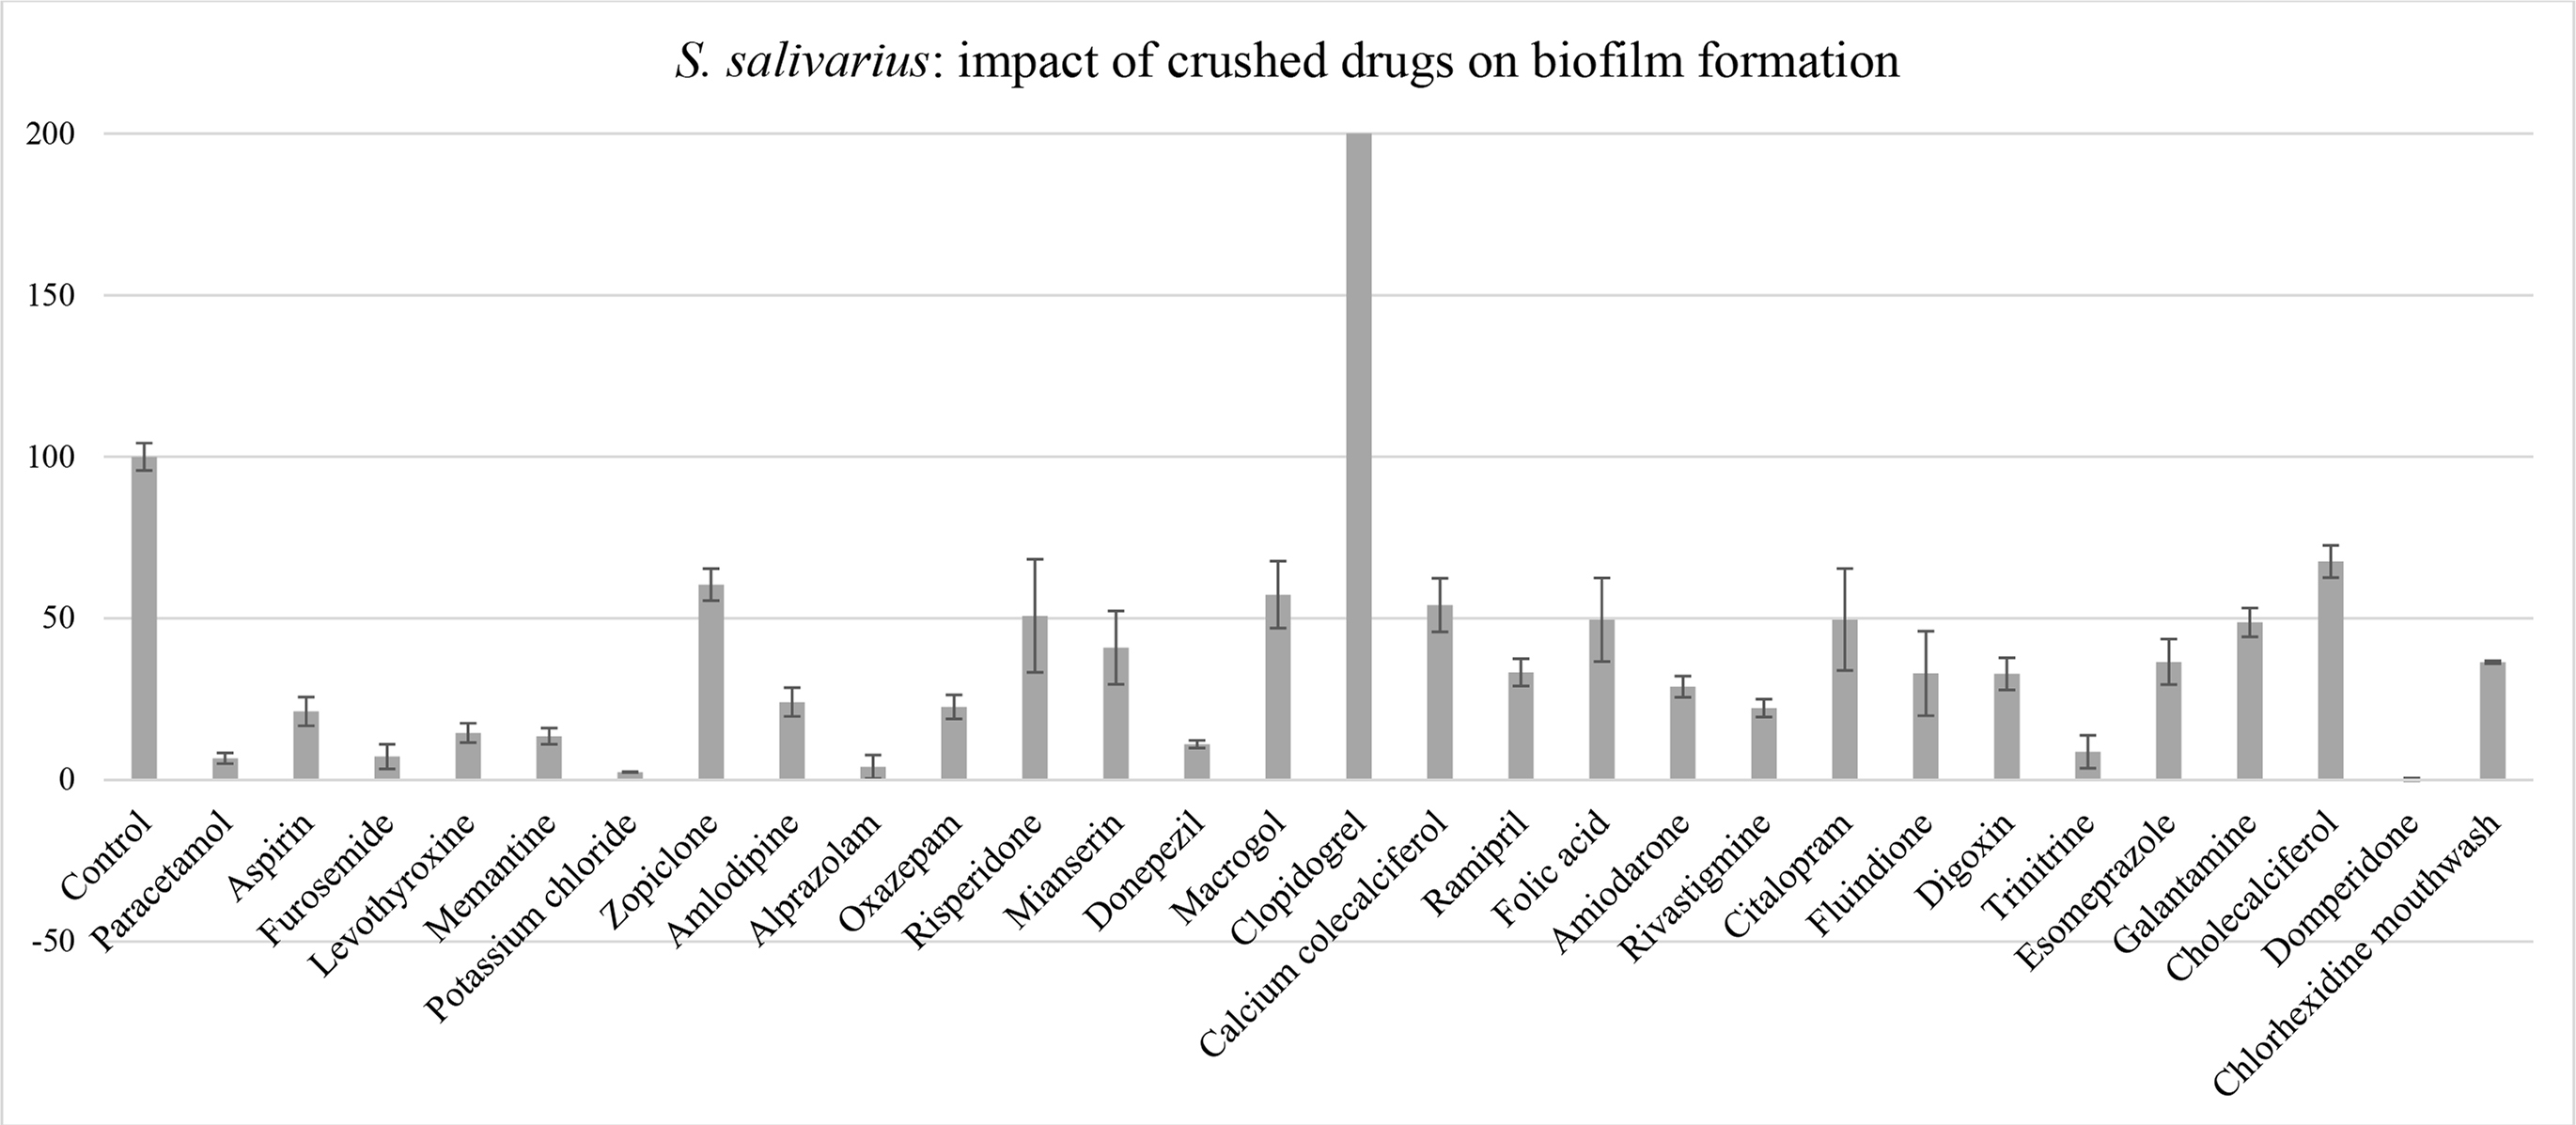 Anti-biofilm properties of drugs commonly prescribed in nursing homes: inhibition of the formation of Streptococcus salivariusbiofilm grown for 48 hrs. Results are expressed as % growth compared to control. Control: 100% of S. salivarius biomass (crystal violet) in a biofilm grown for 48 hrs without medication.